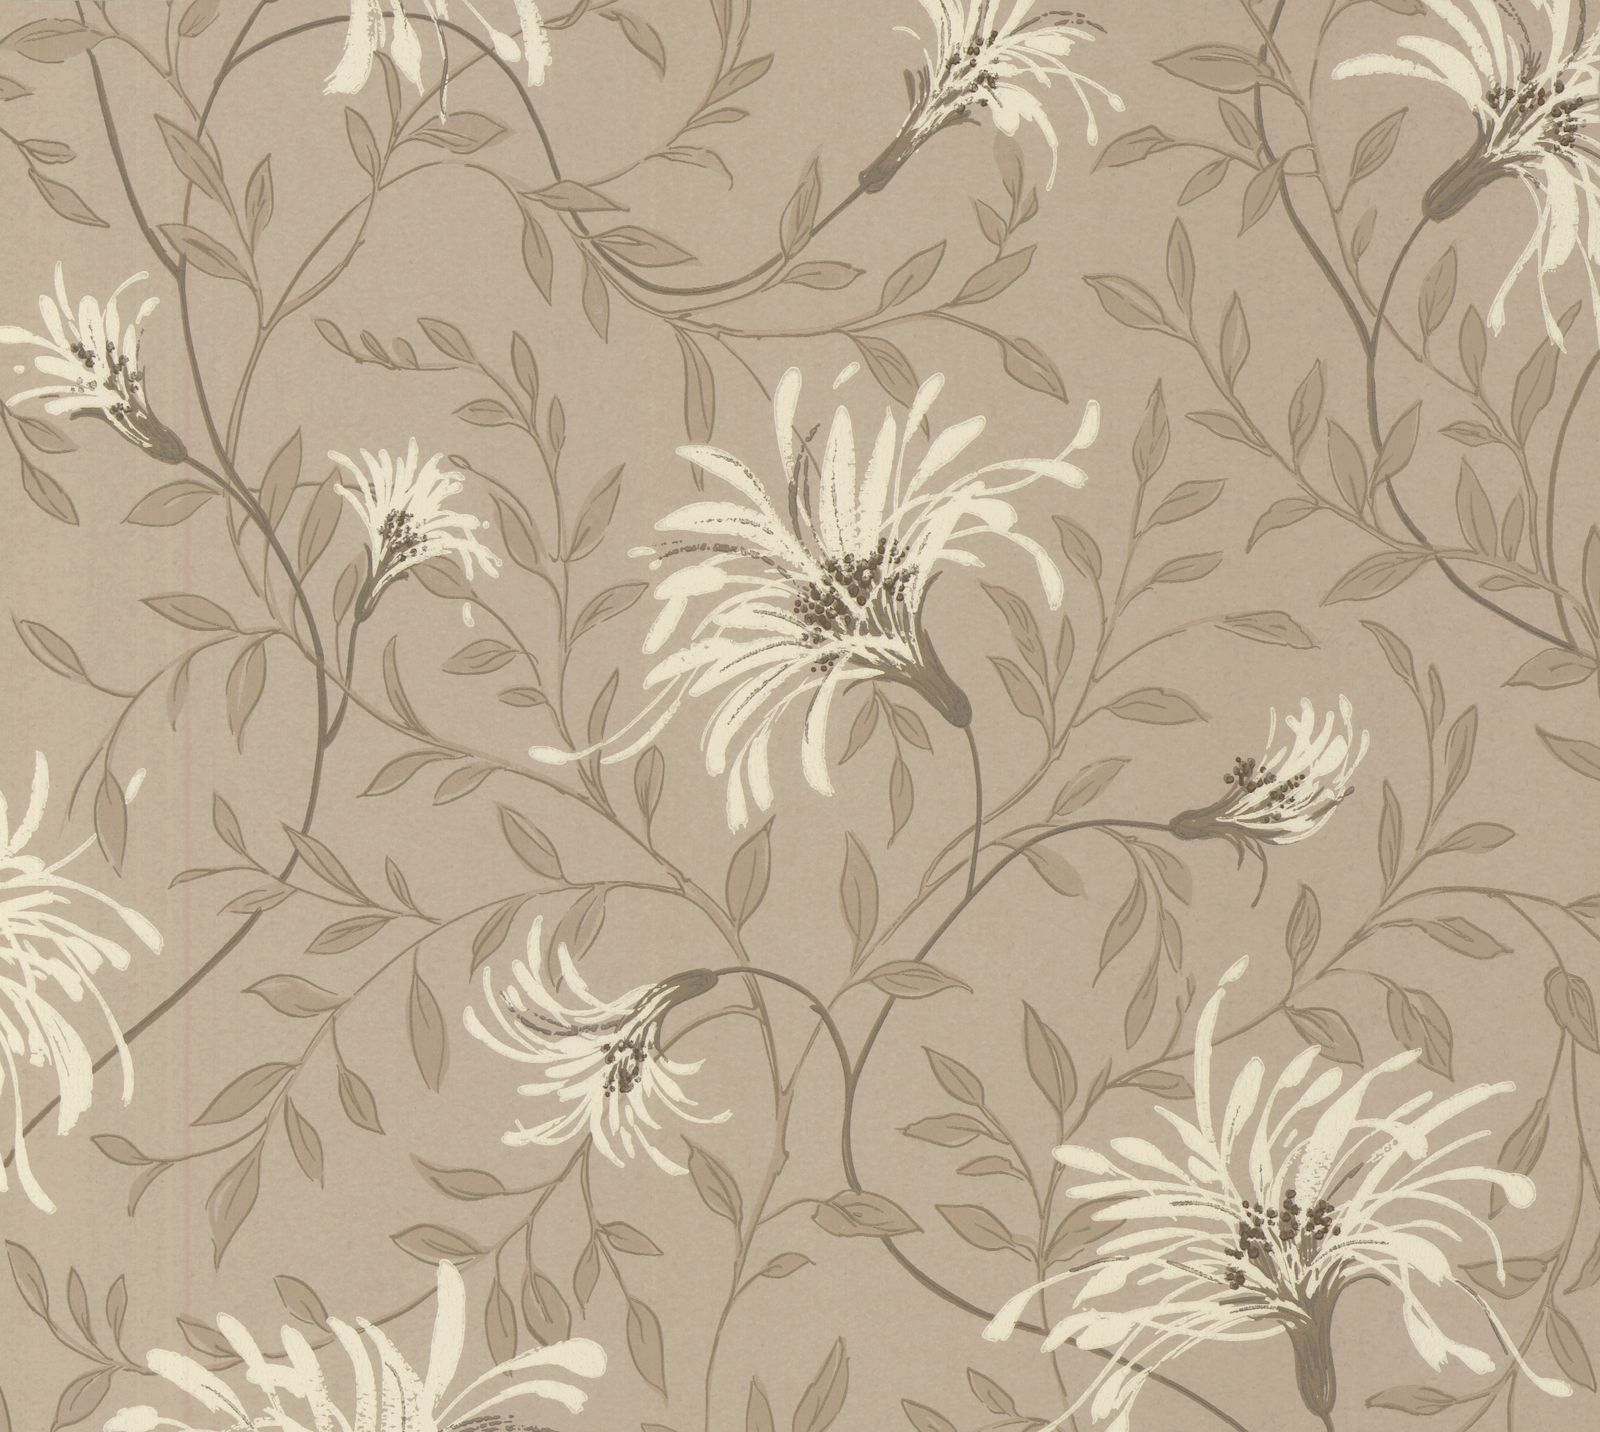 Tapetti 1838 Wallcoverings Fairhaven ruskea 0,52x10,05 m